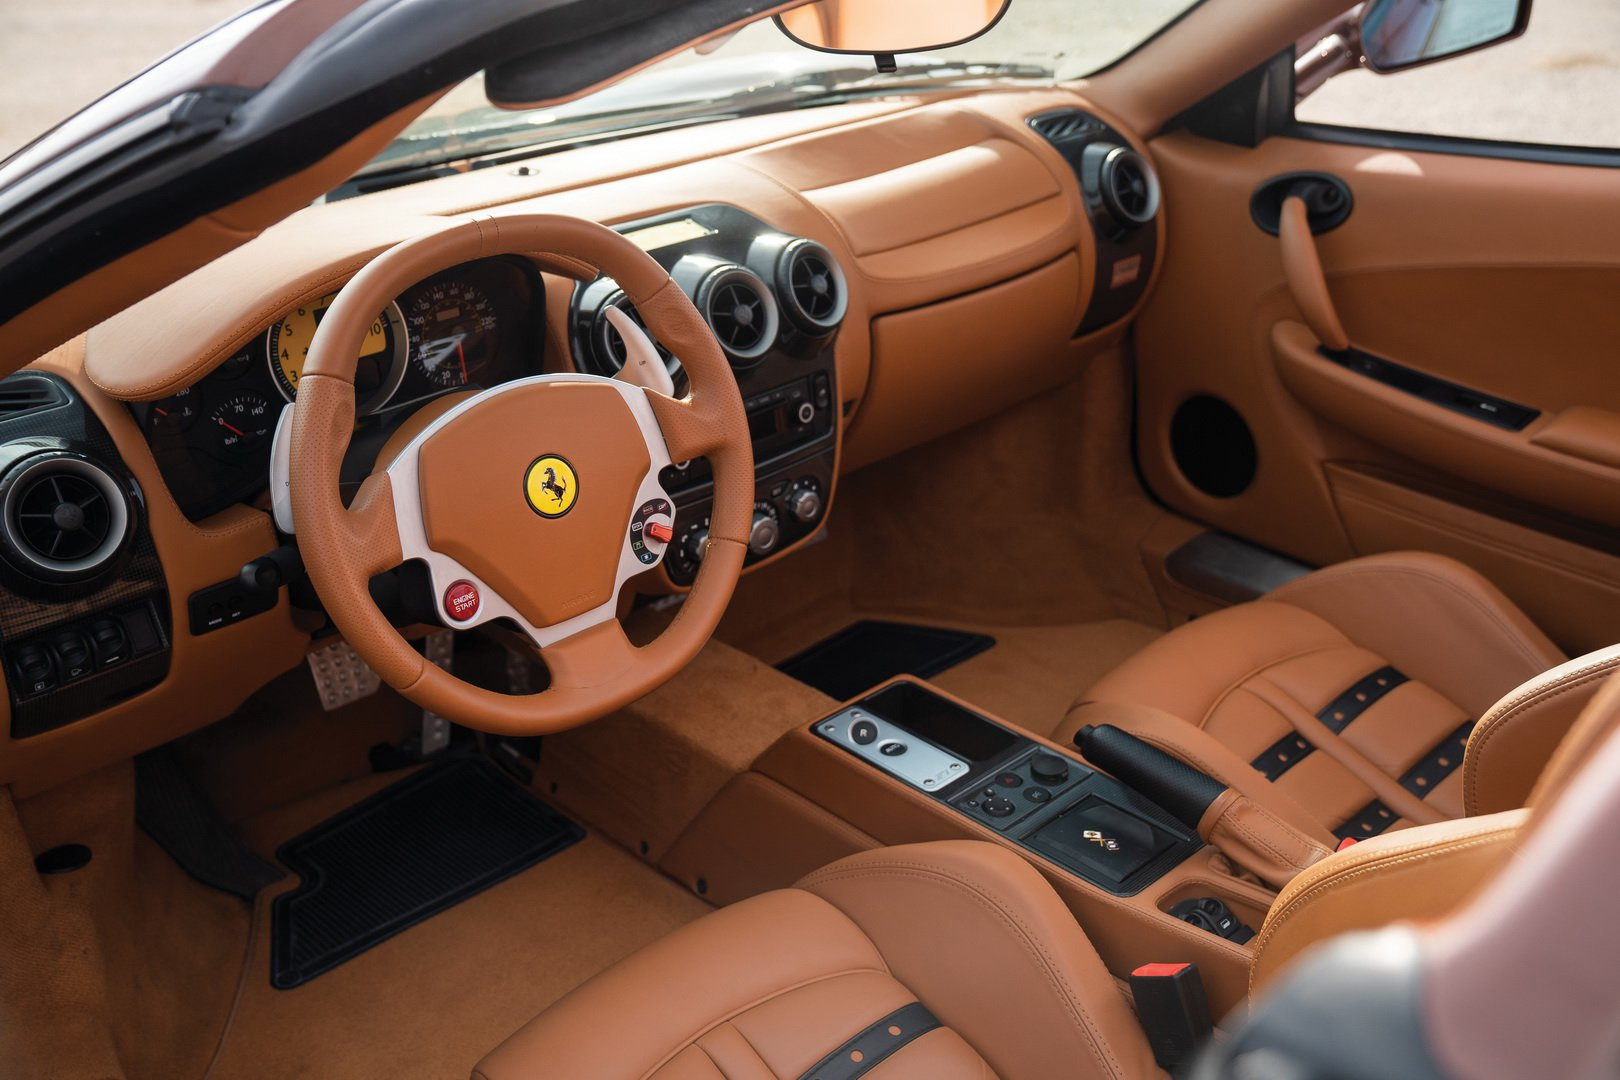 Ferrari F430 Spider in brown Classic Marrone color (21)